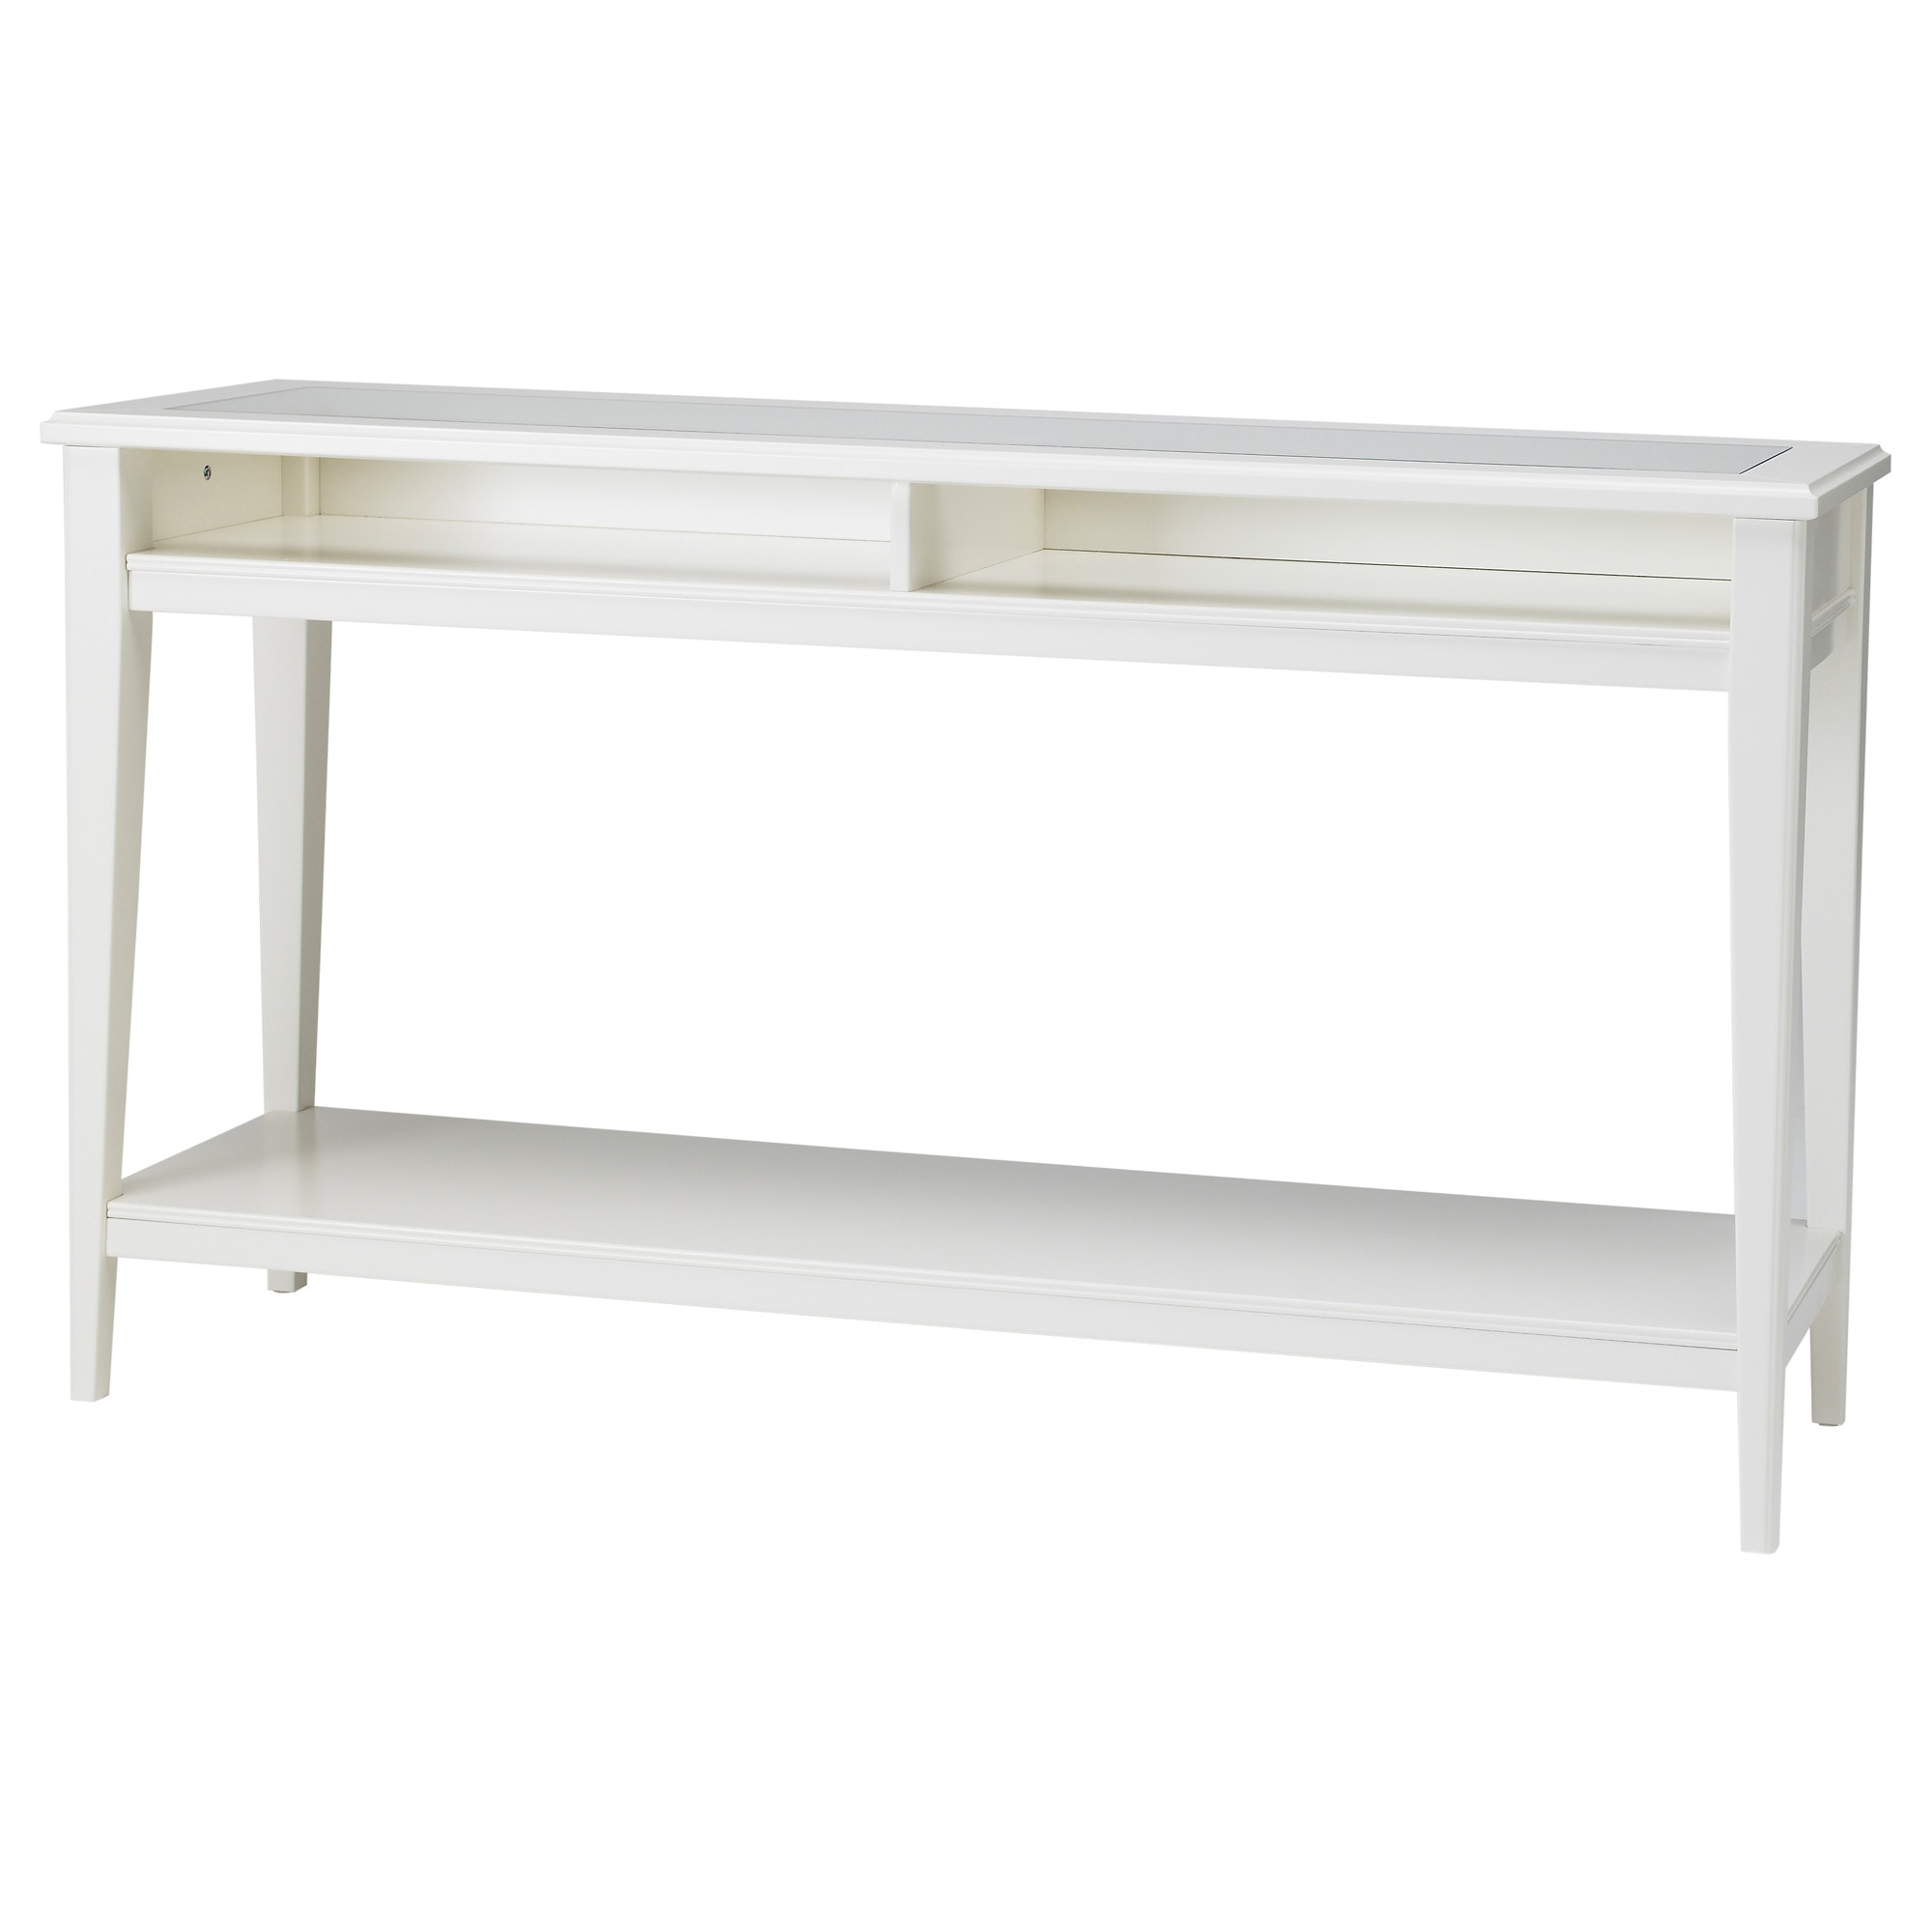 Genial LIATORP Console Table   White/glass   IKEA